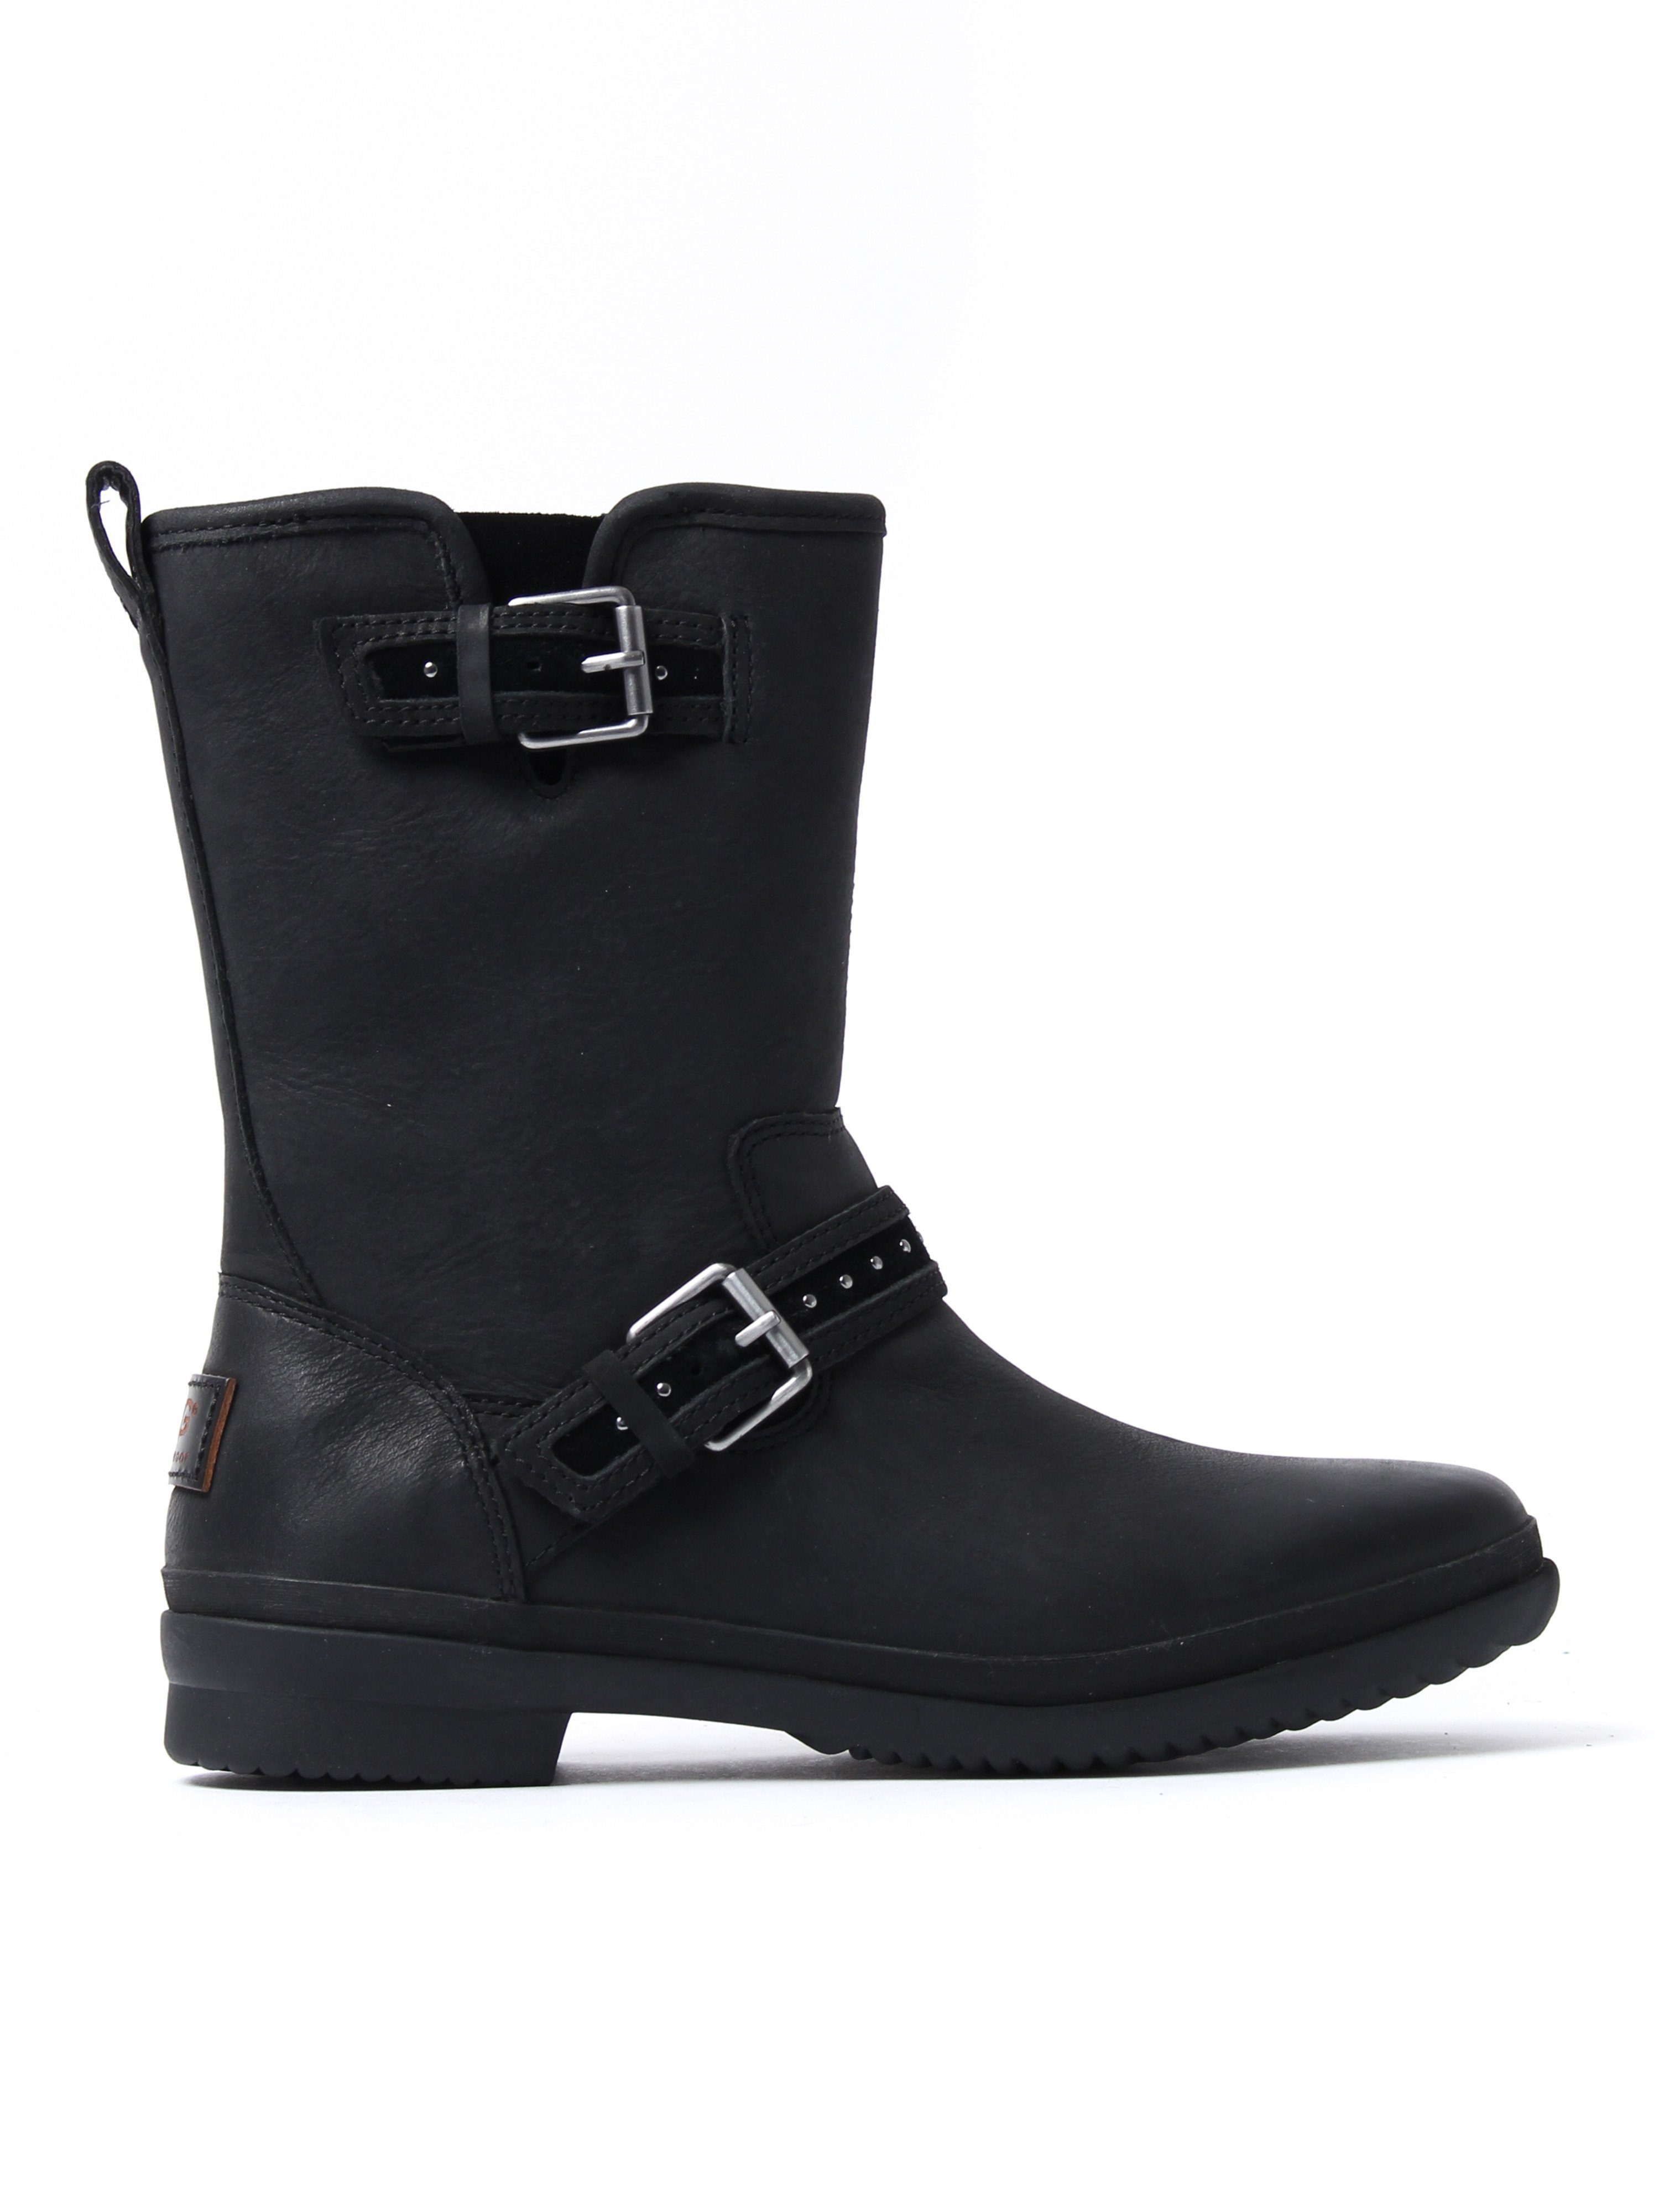 UGG Women's Jenise Biker Boots - Black Leather